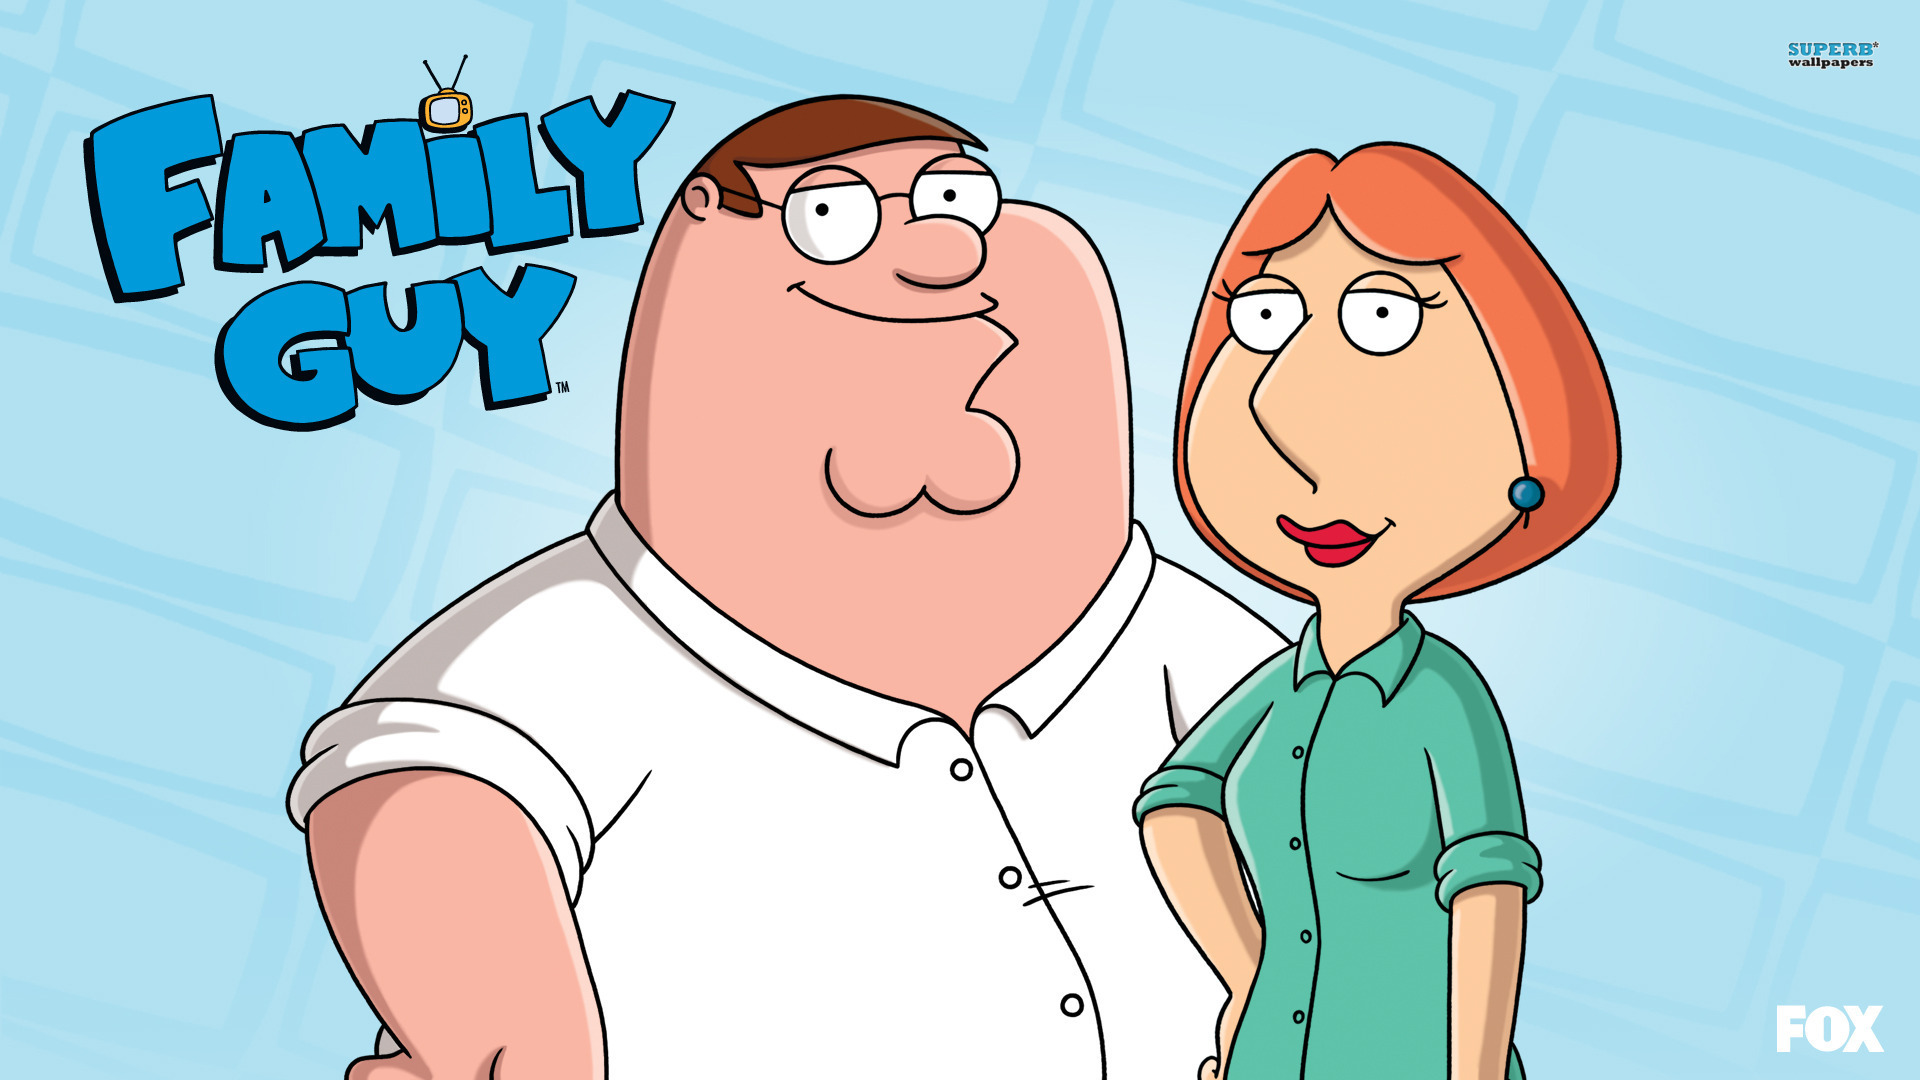 Family Guy wallpaper 1920x1080 jpg